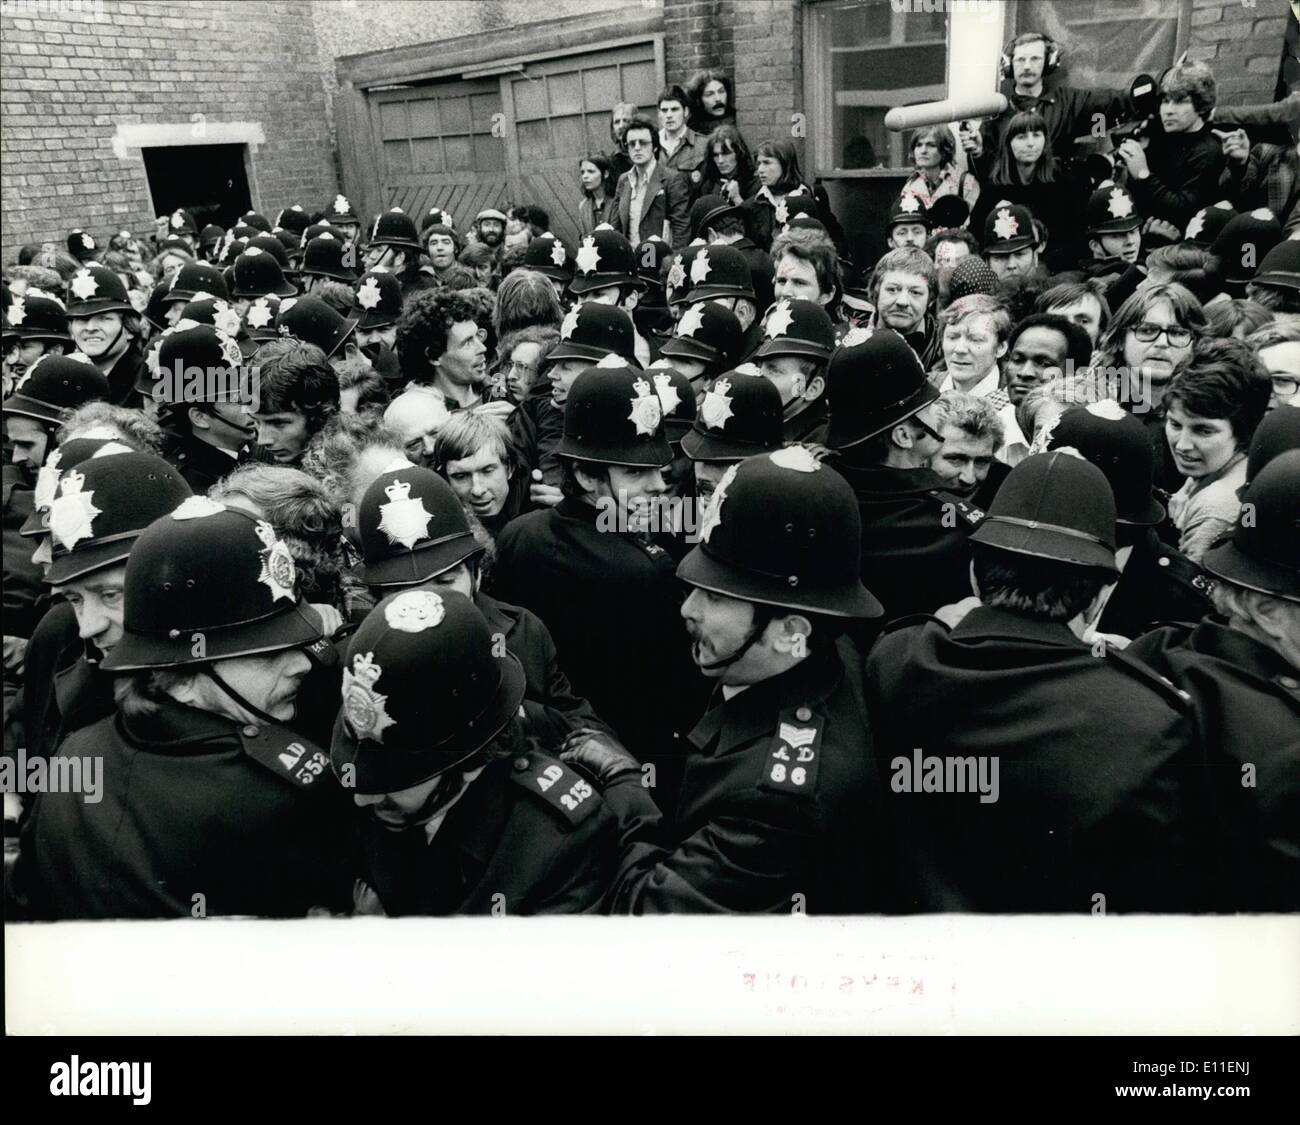 Jun. 06, 1977 - Policeman Badly Injured During Fighting Outside The Grunwick Factory: During the fighting which took place this - Stock Image